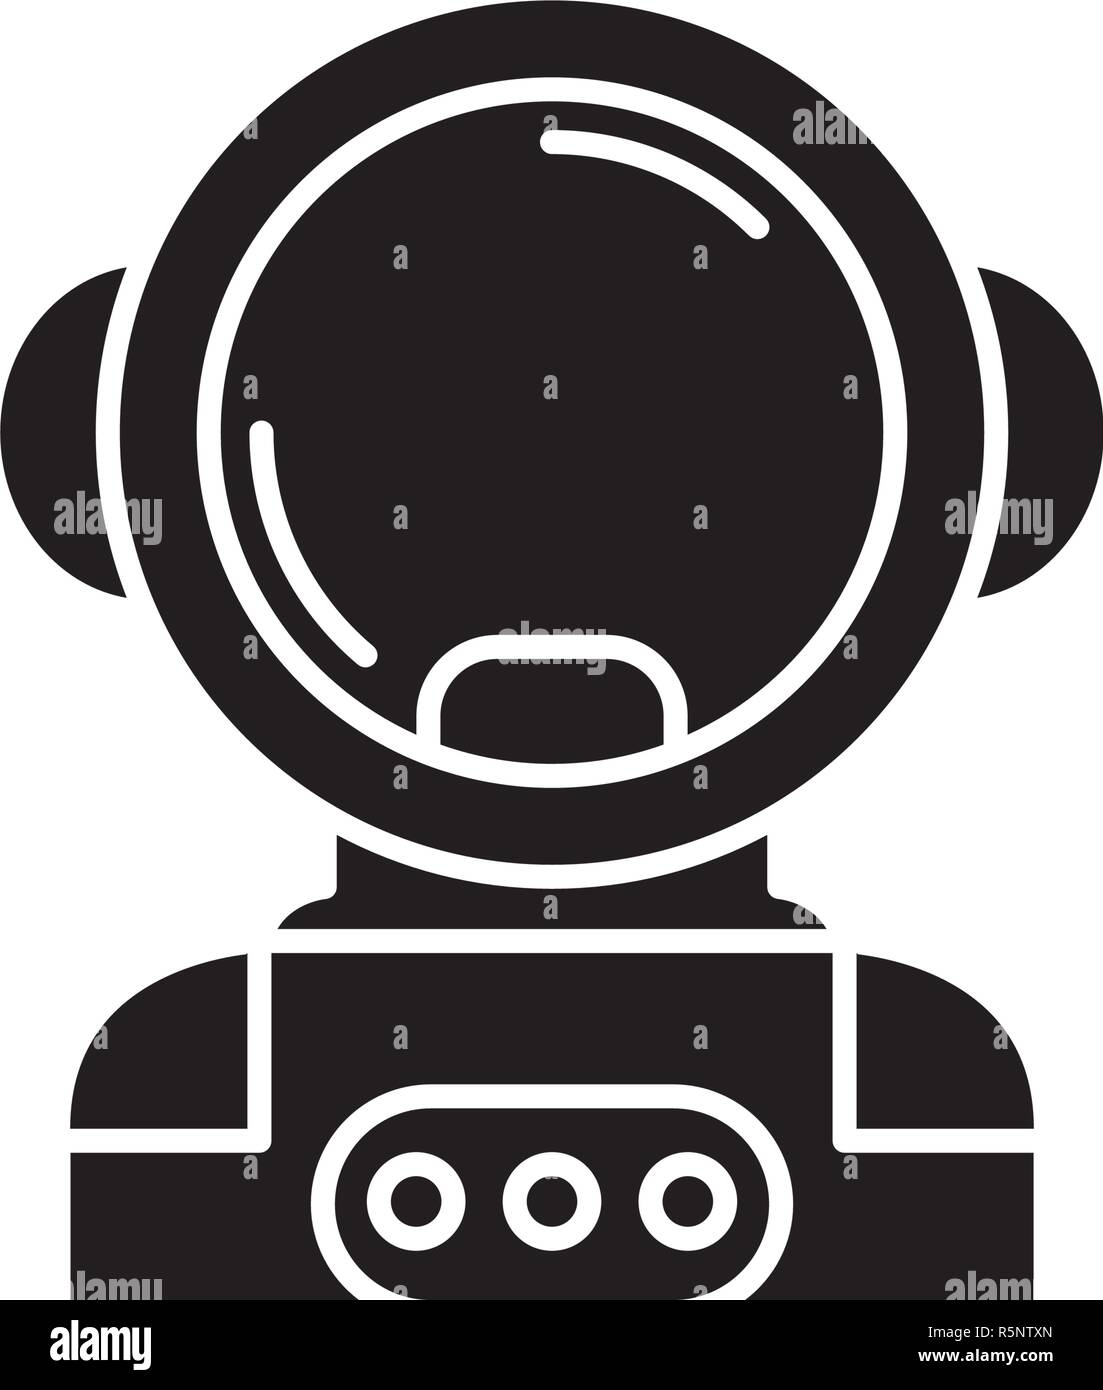 Cosmonaut in space black icon, vector sign on isolated background. Cosmonaut in space concept symbol, illustration  - Stock Image